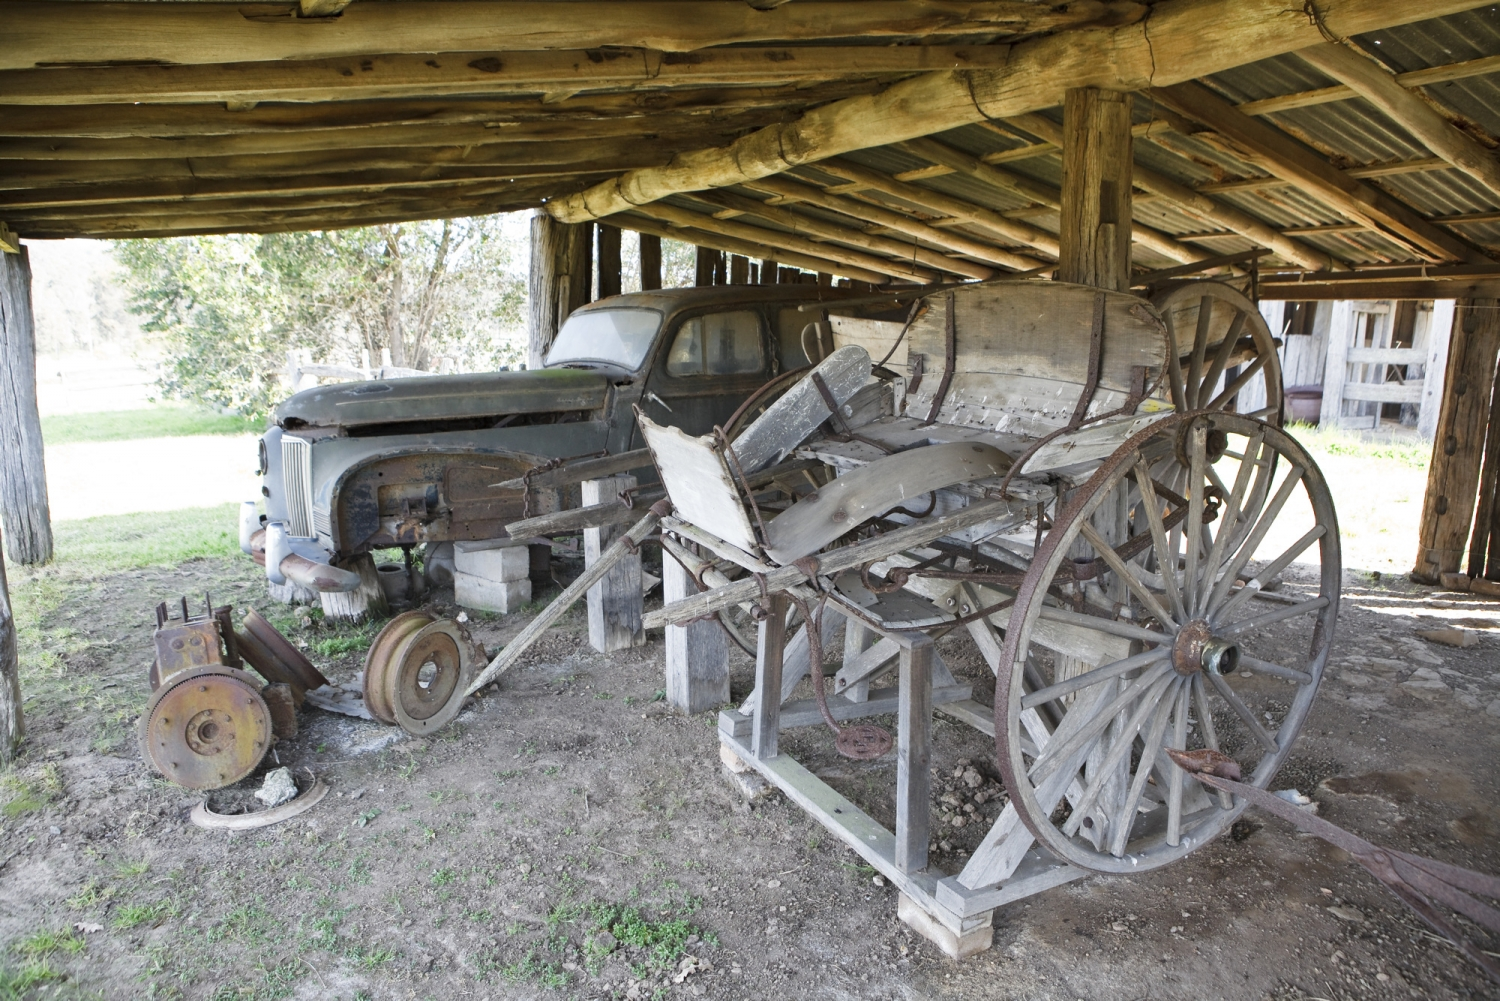 Two old dilapidated vehicles in low-roofed timber and iron roofed shed.